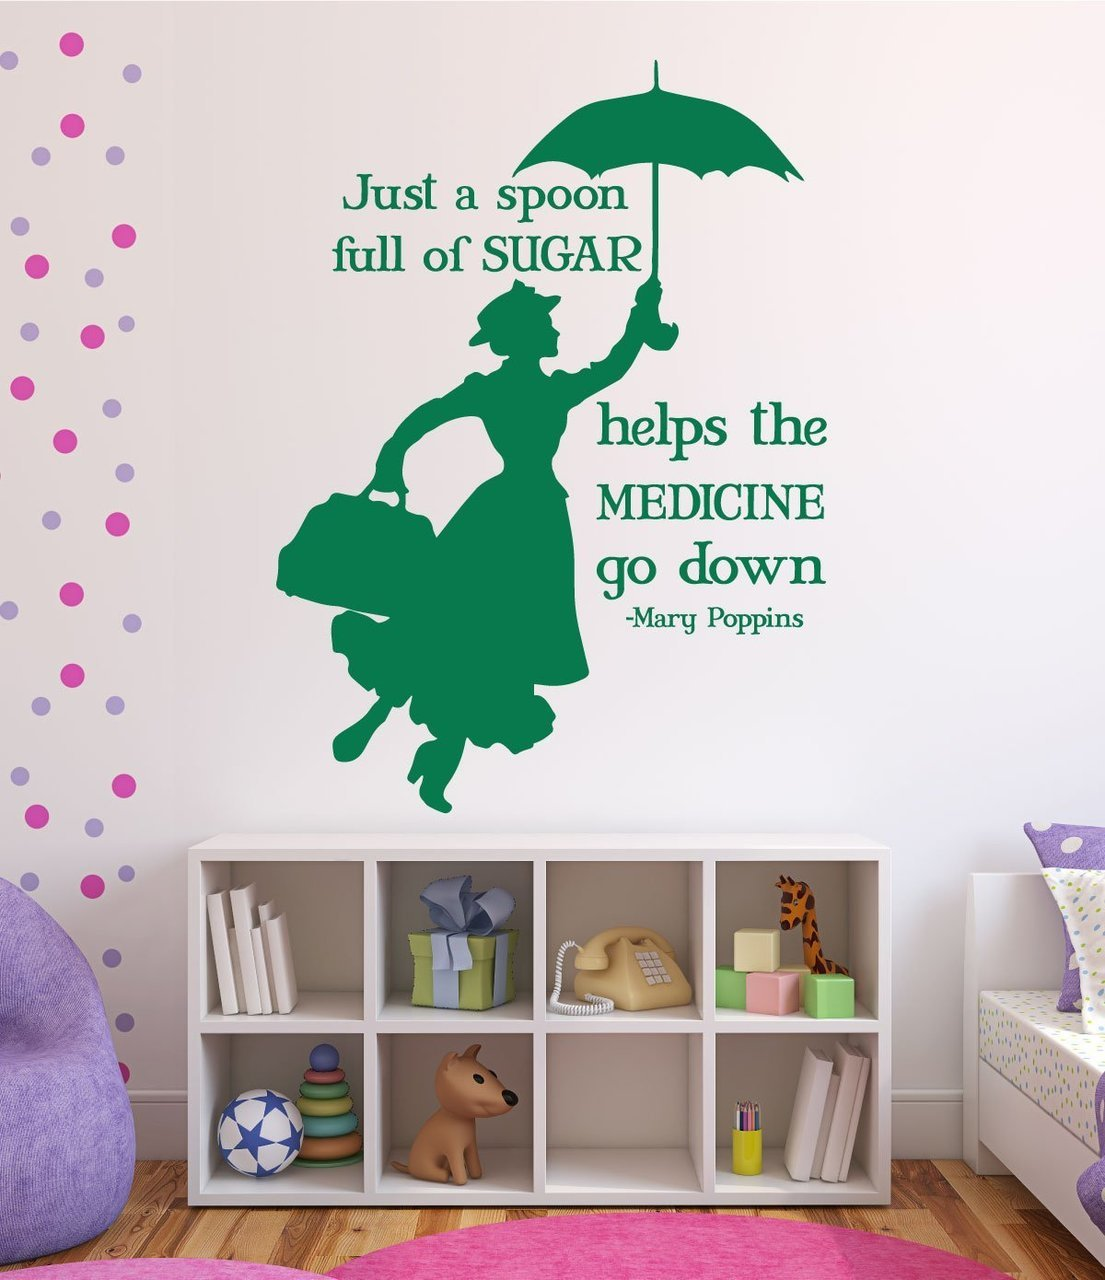 Wall Art Murals Decals Stickers Disney Wall Decals Mary Poppins Disney Home Decor